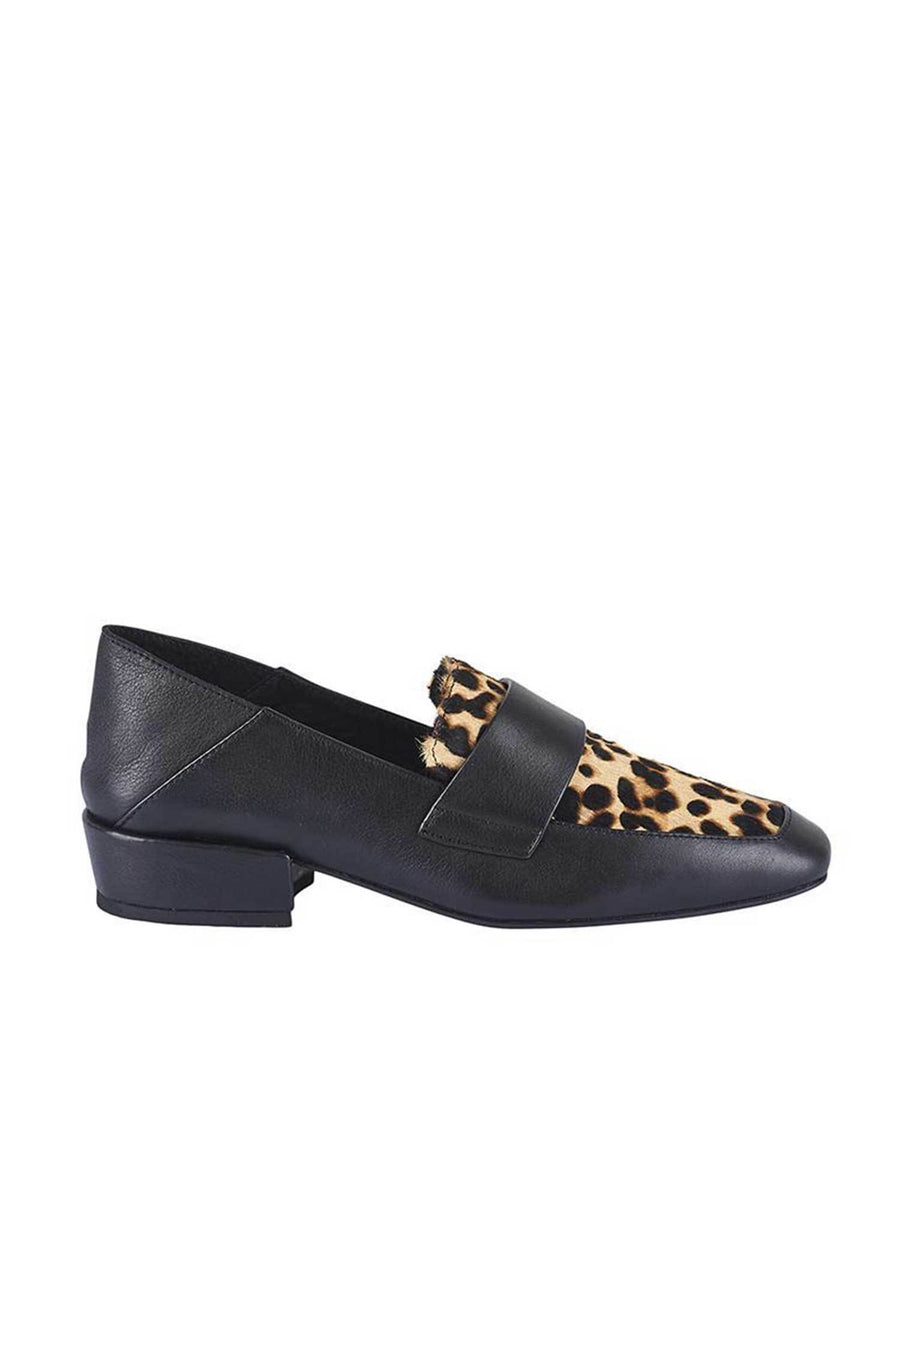 Shop Online Colt Loafer in Black & Leopard Pony by Sol Sana  Frockaholics Shoes